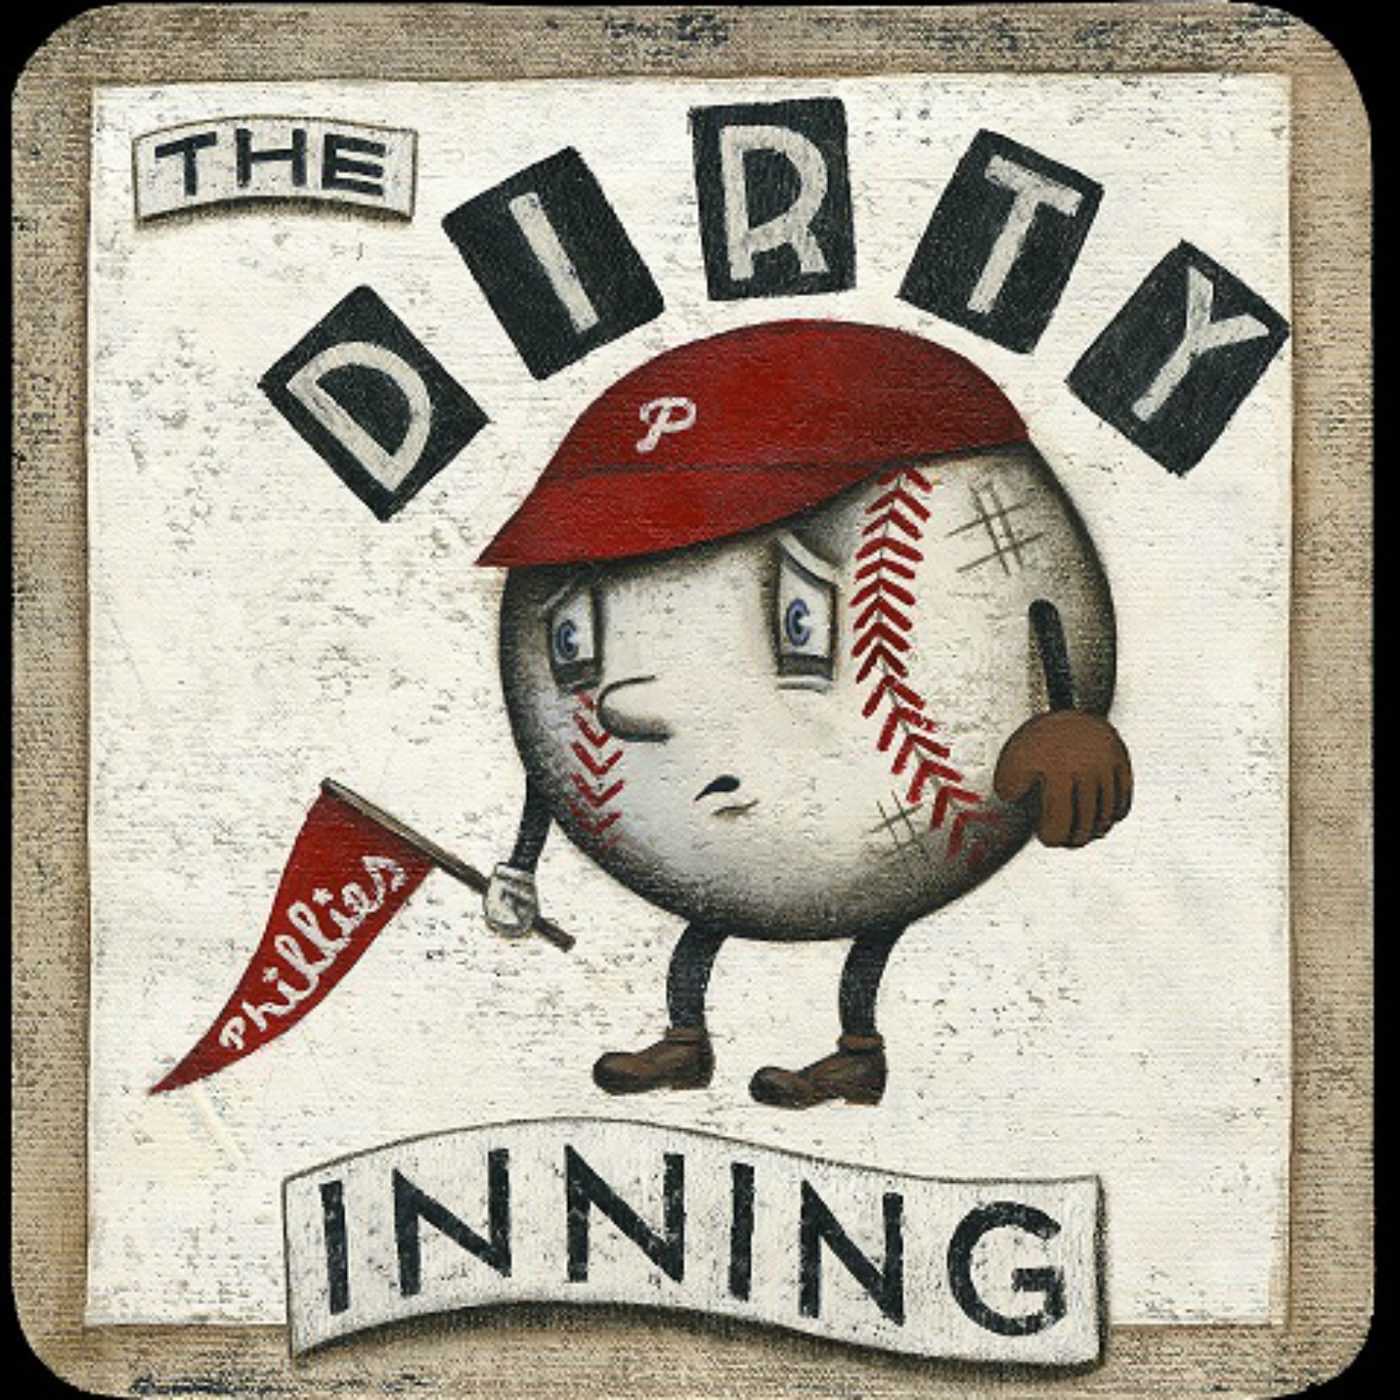 The Dirty Inning: Cutch-and-go, or the dominance of the 2014 Phillies by Andrew McCutchen